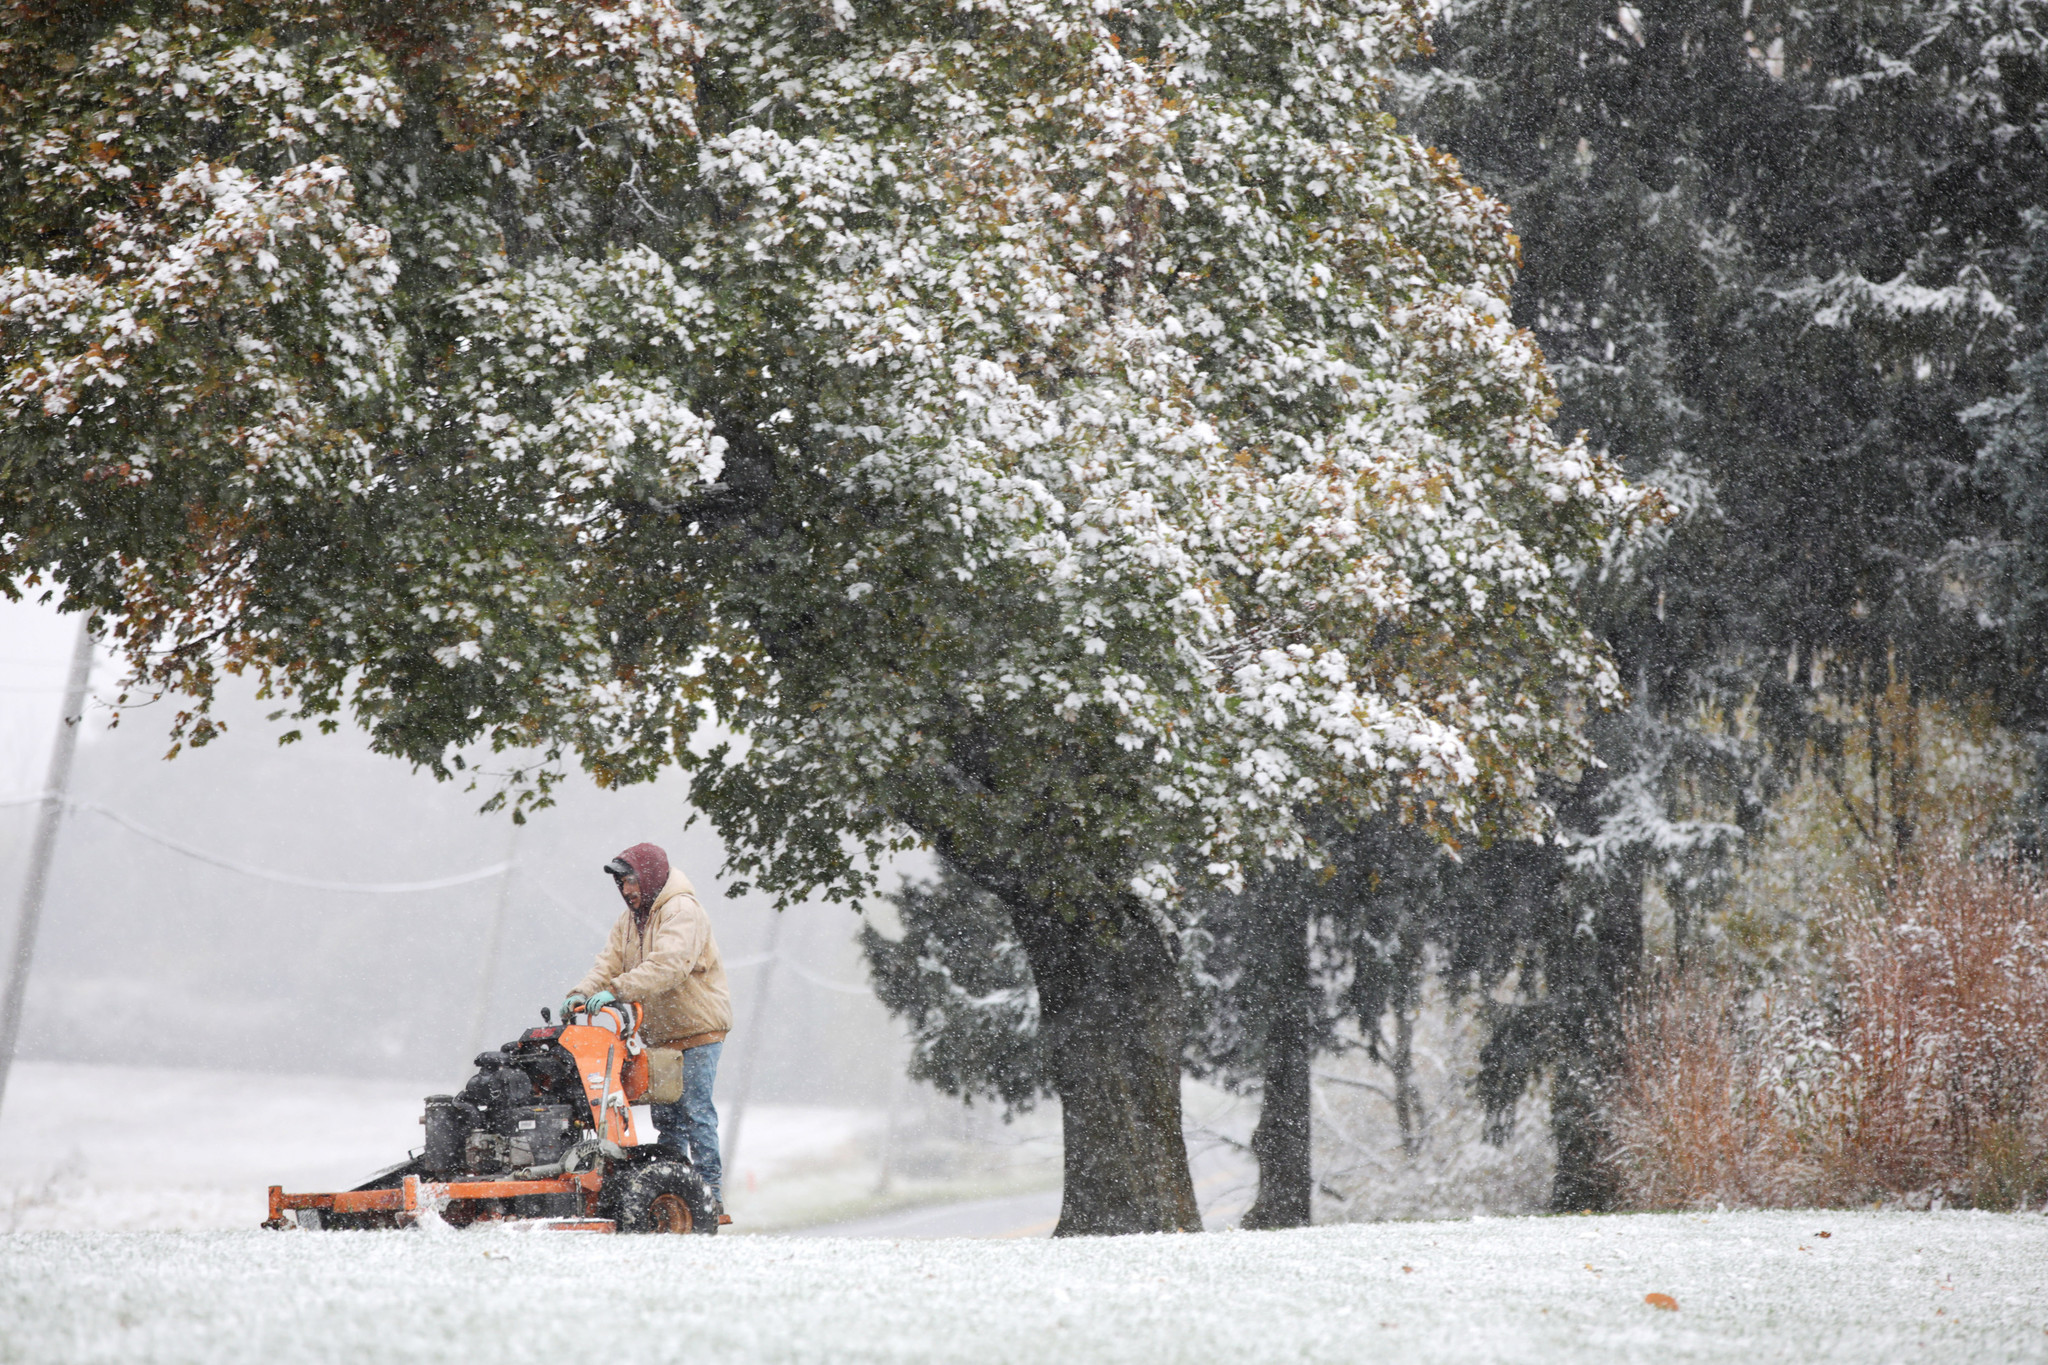 Halloween Temperatures 2020 Chicago First snow of season for Chicago, but warmer Halloween in store